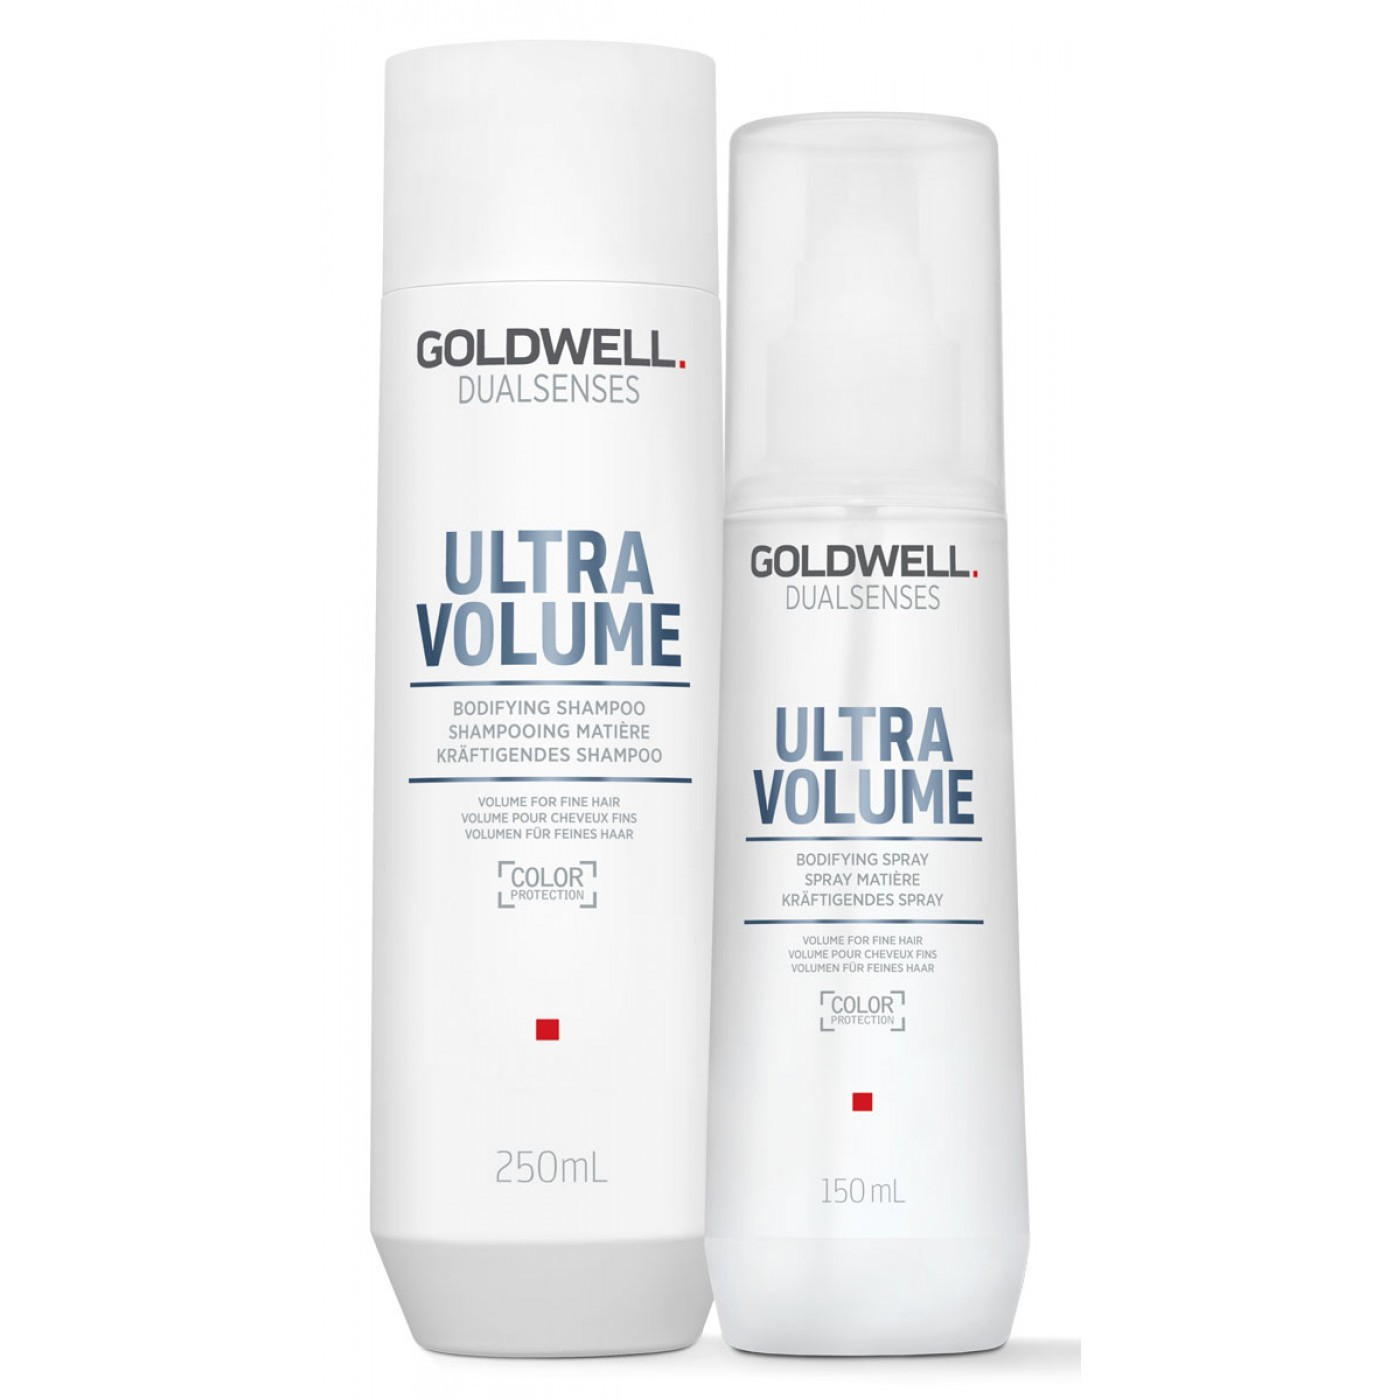 Goldwell Ultra Volume Shampoo & Conditioner